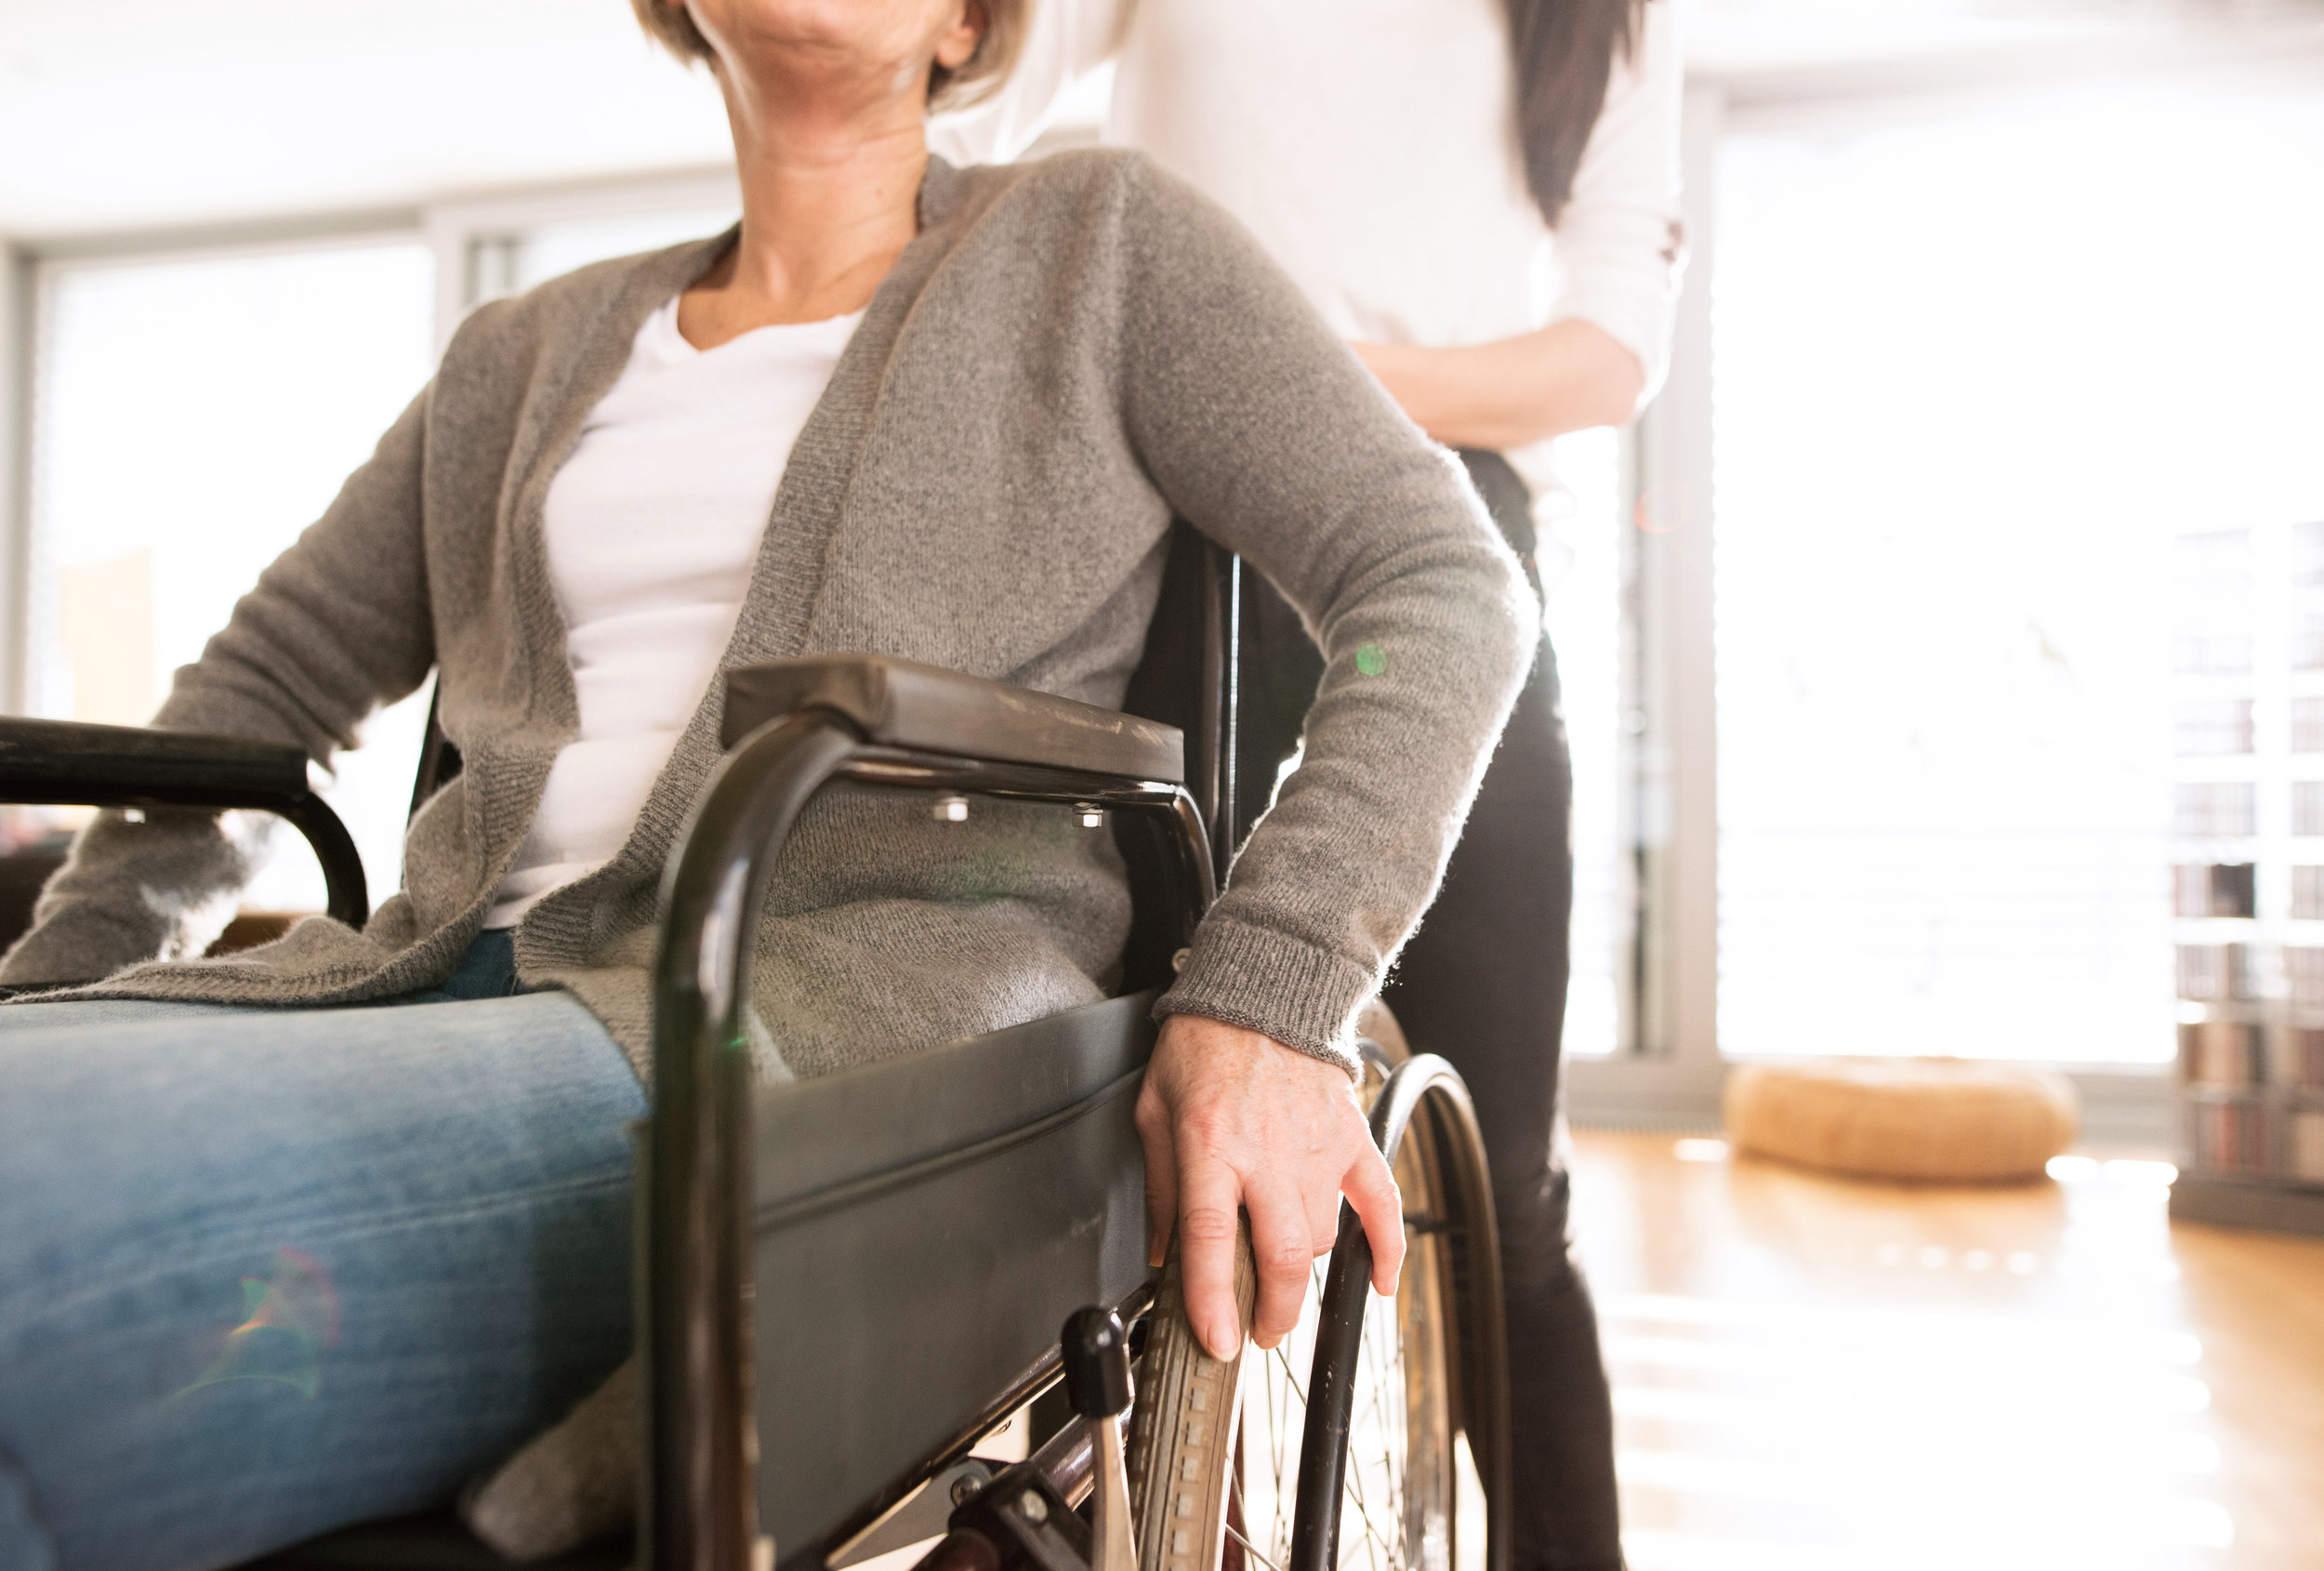 Care Supplies & Savings - As part of our ongoing mission to enhance our care solutions, we are ready to assist clients with assessment, advice and purchasing of care supplies such as nursing procedure consumables and mobility equipment at special prices.Speak with us to find out more.